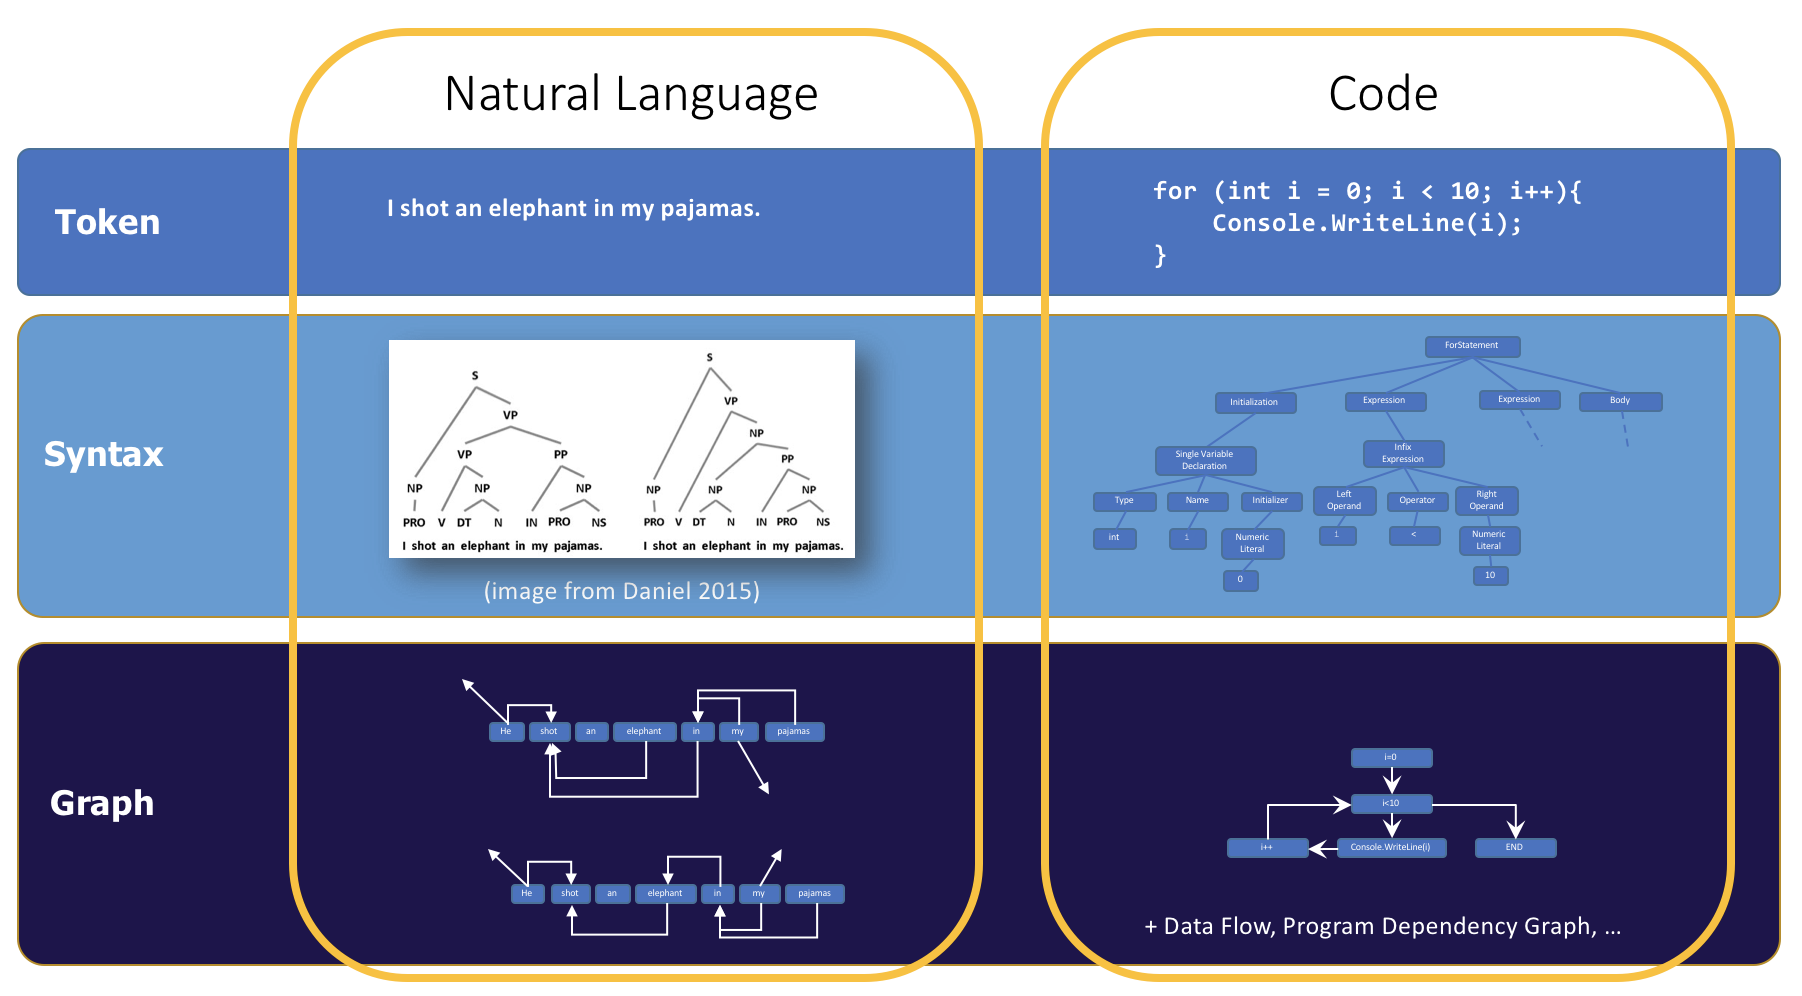 Modelling Natural Language, Programs, and their Intersection